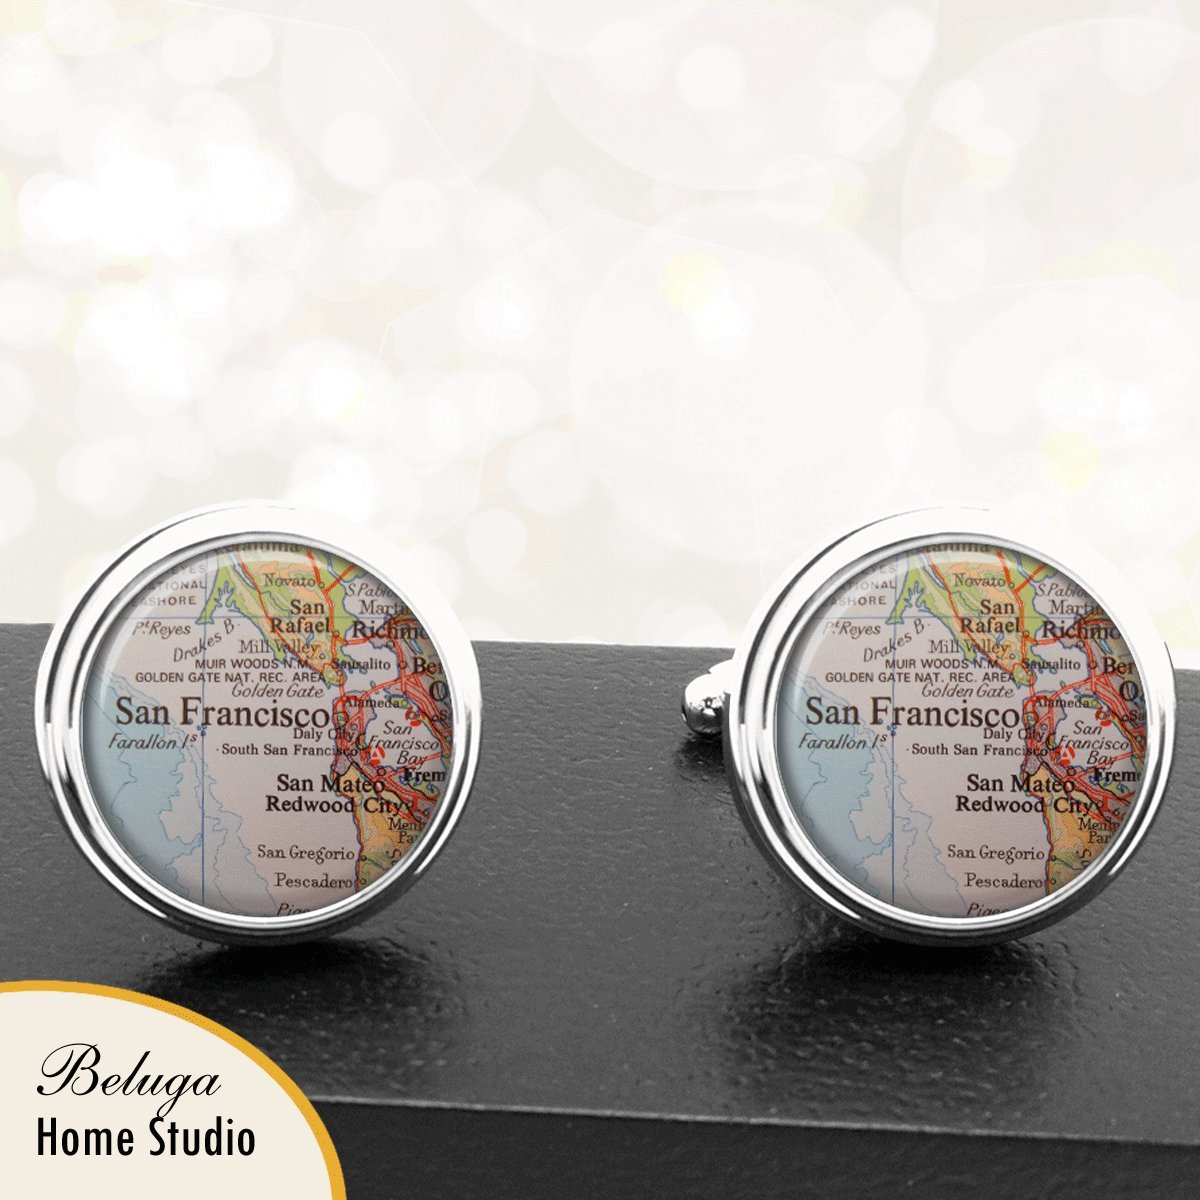 Amazon.com: Handmade Map Cuff Links San Francisco CA USA ... on state of texas houston map, state of illinois chicago map, state of washington seattle map, state of california county map, state of alabama huntsville map,